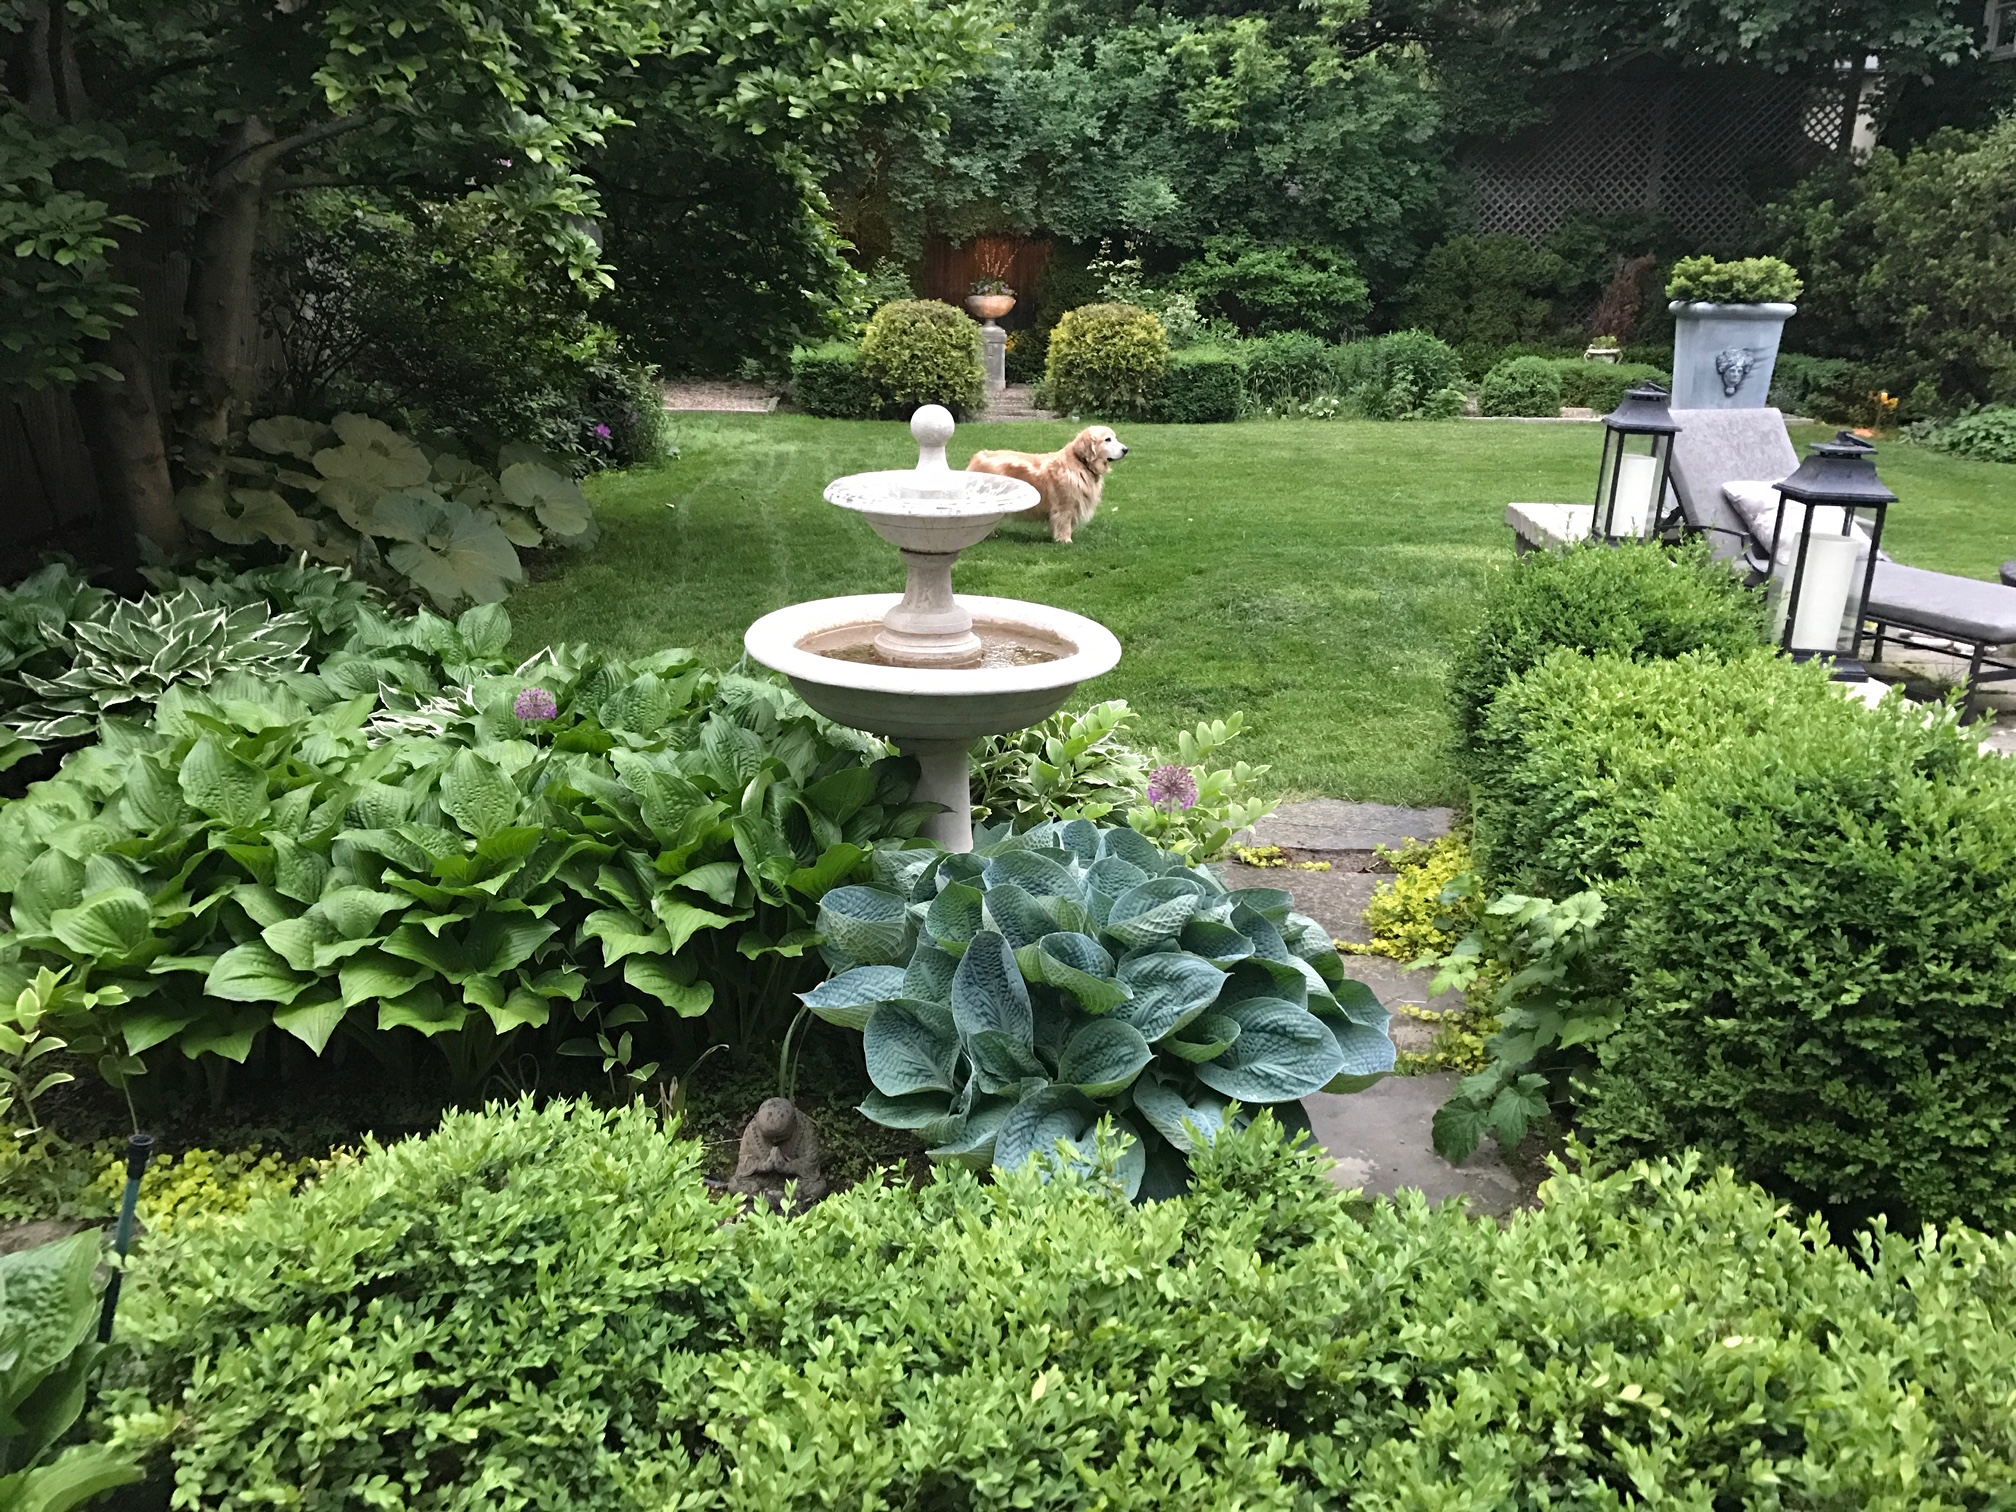 Sprucing Up Your Yard or Garden for Spring